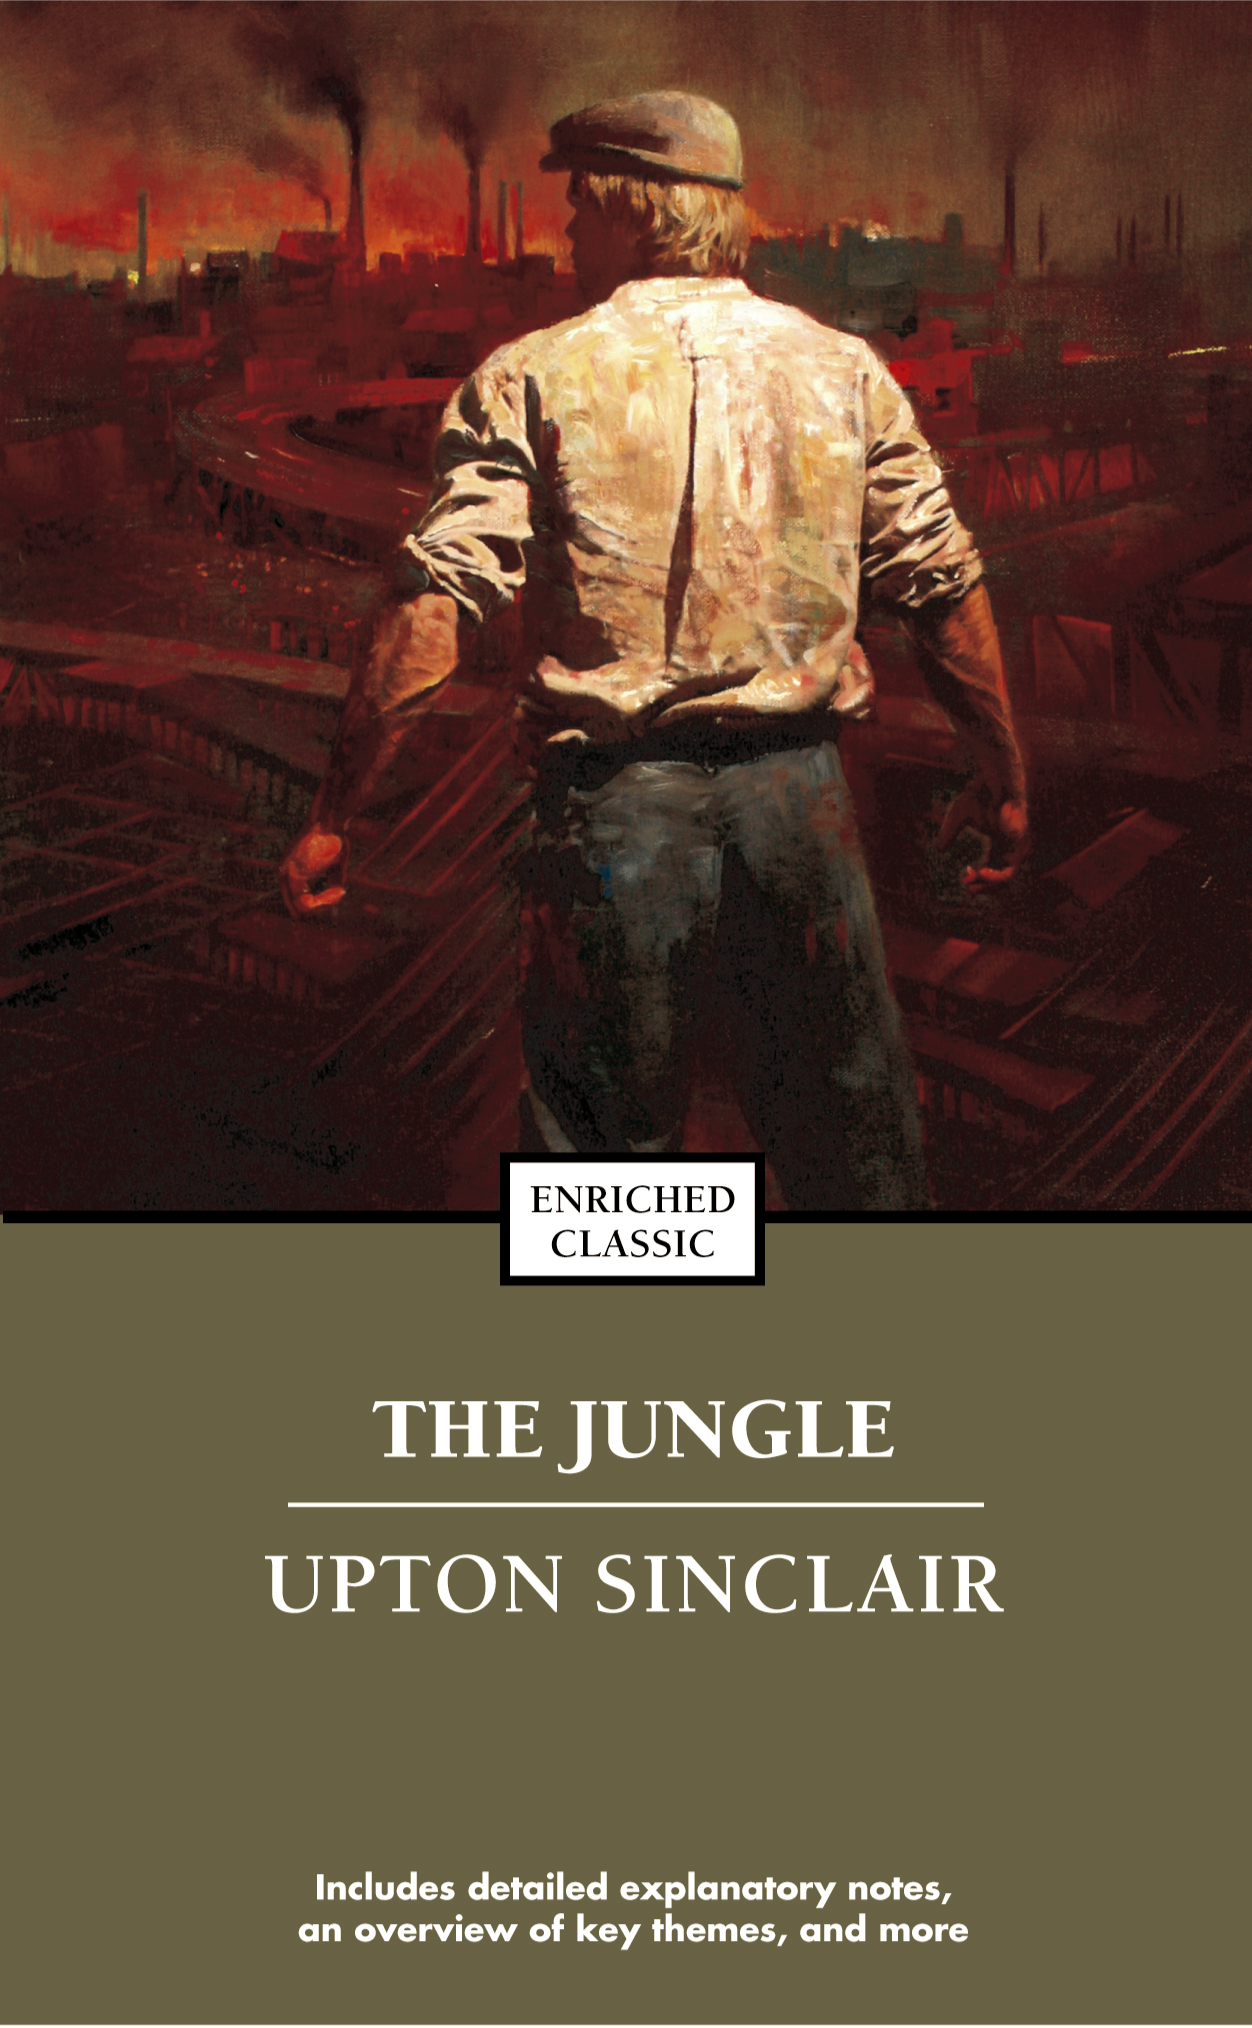 critical analysis of upton sinclairs the jungle Robert w mcchesney is a coeditor of monthly review ben scott is a graduate student at the university of illinois at urbana-champaign this essay is adapted from the foreword to a new edition of upton sinclair's the brass check to be published this fall by the university of illinois press.